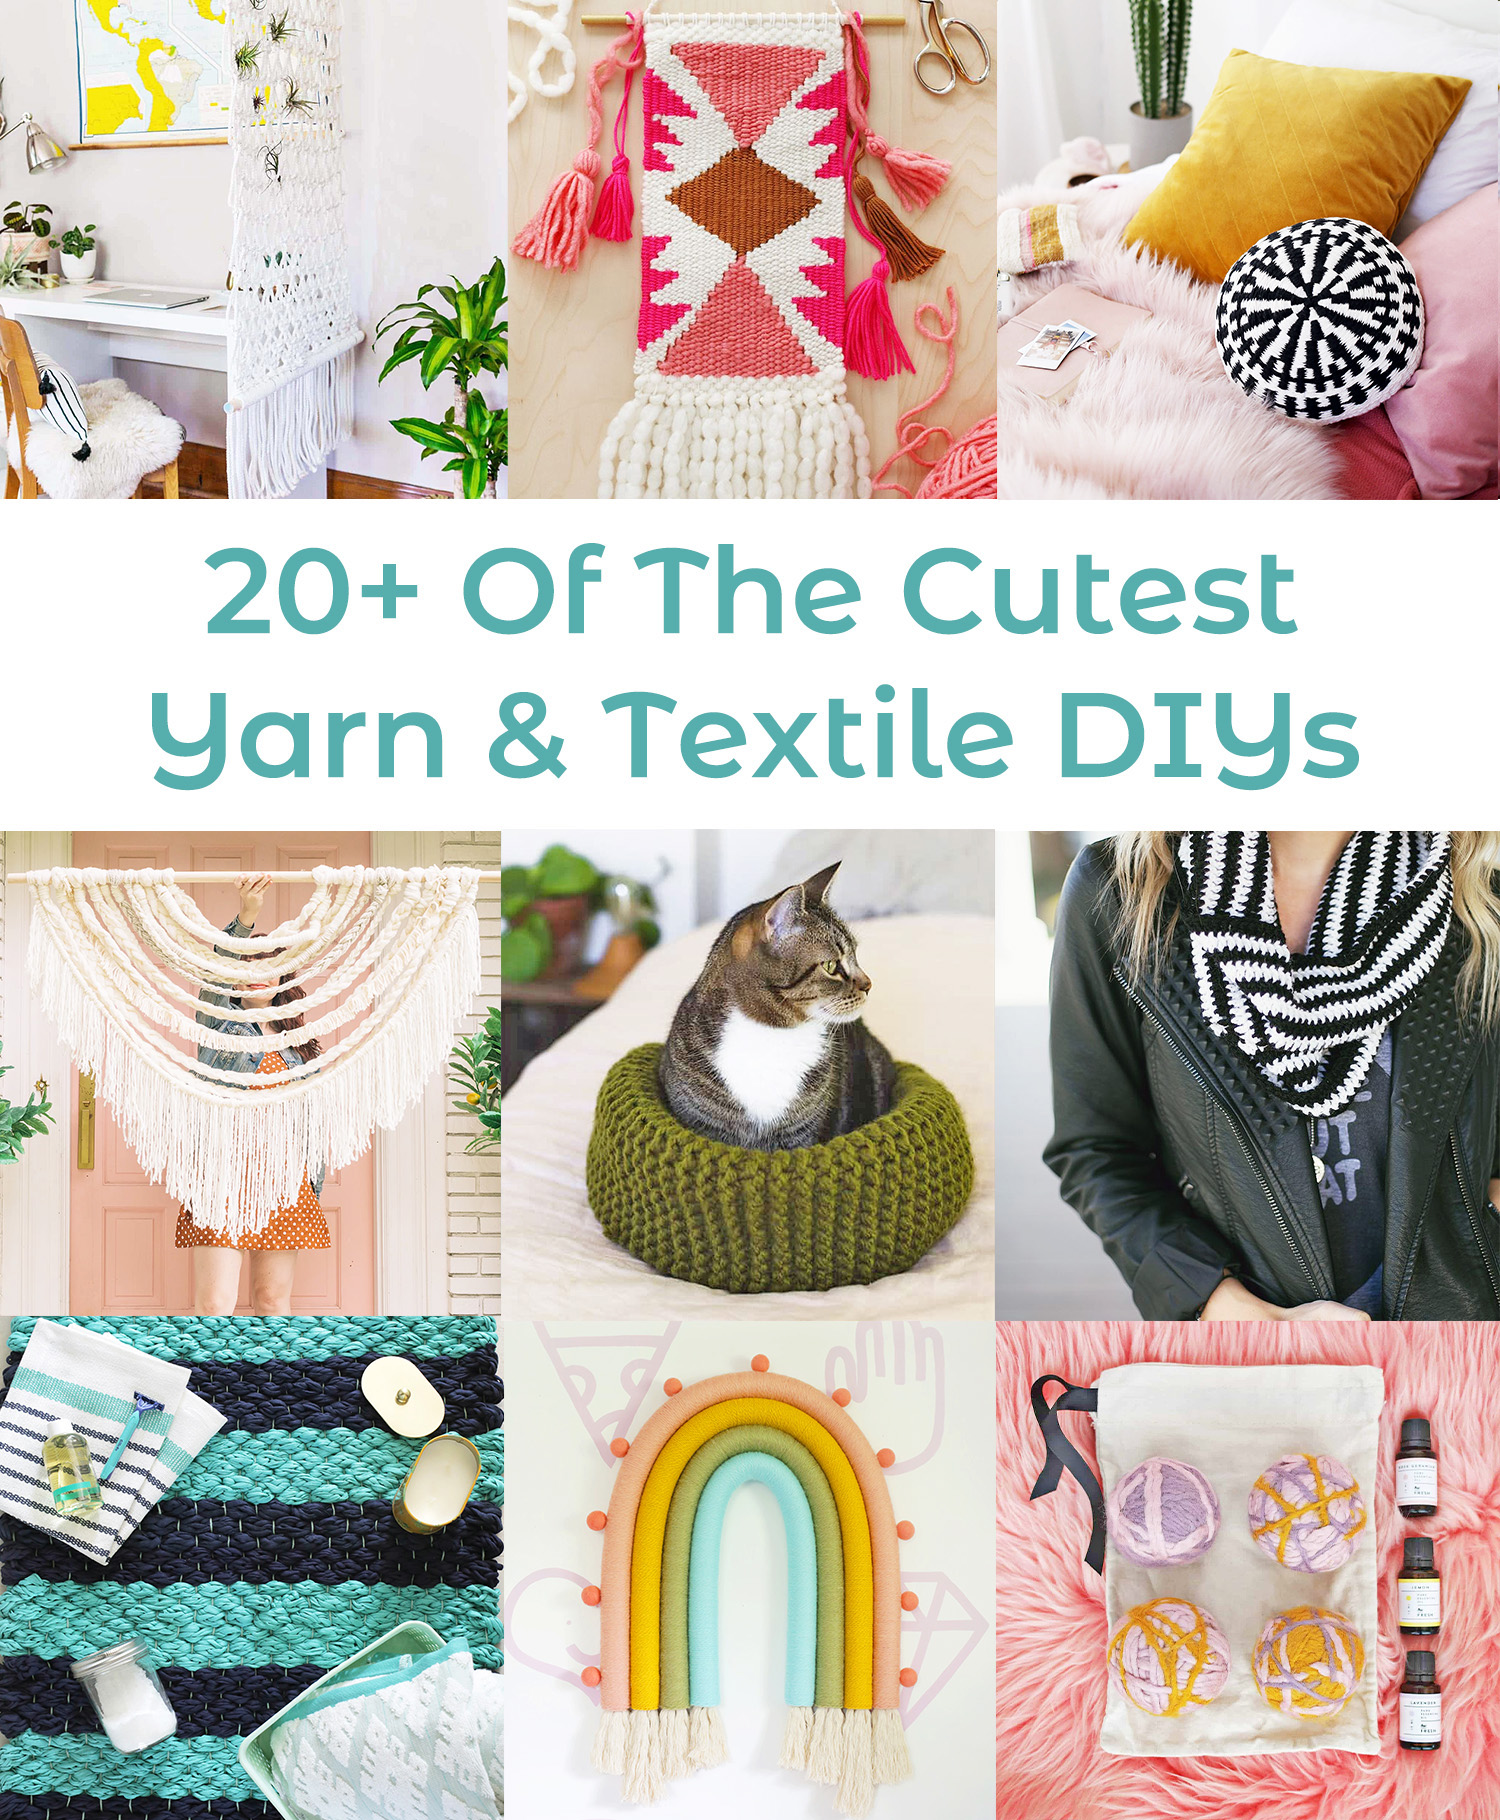 20+ of The Cutest Yarn and Textile DIYs